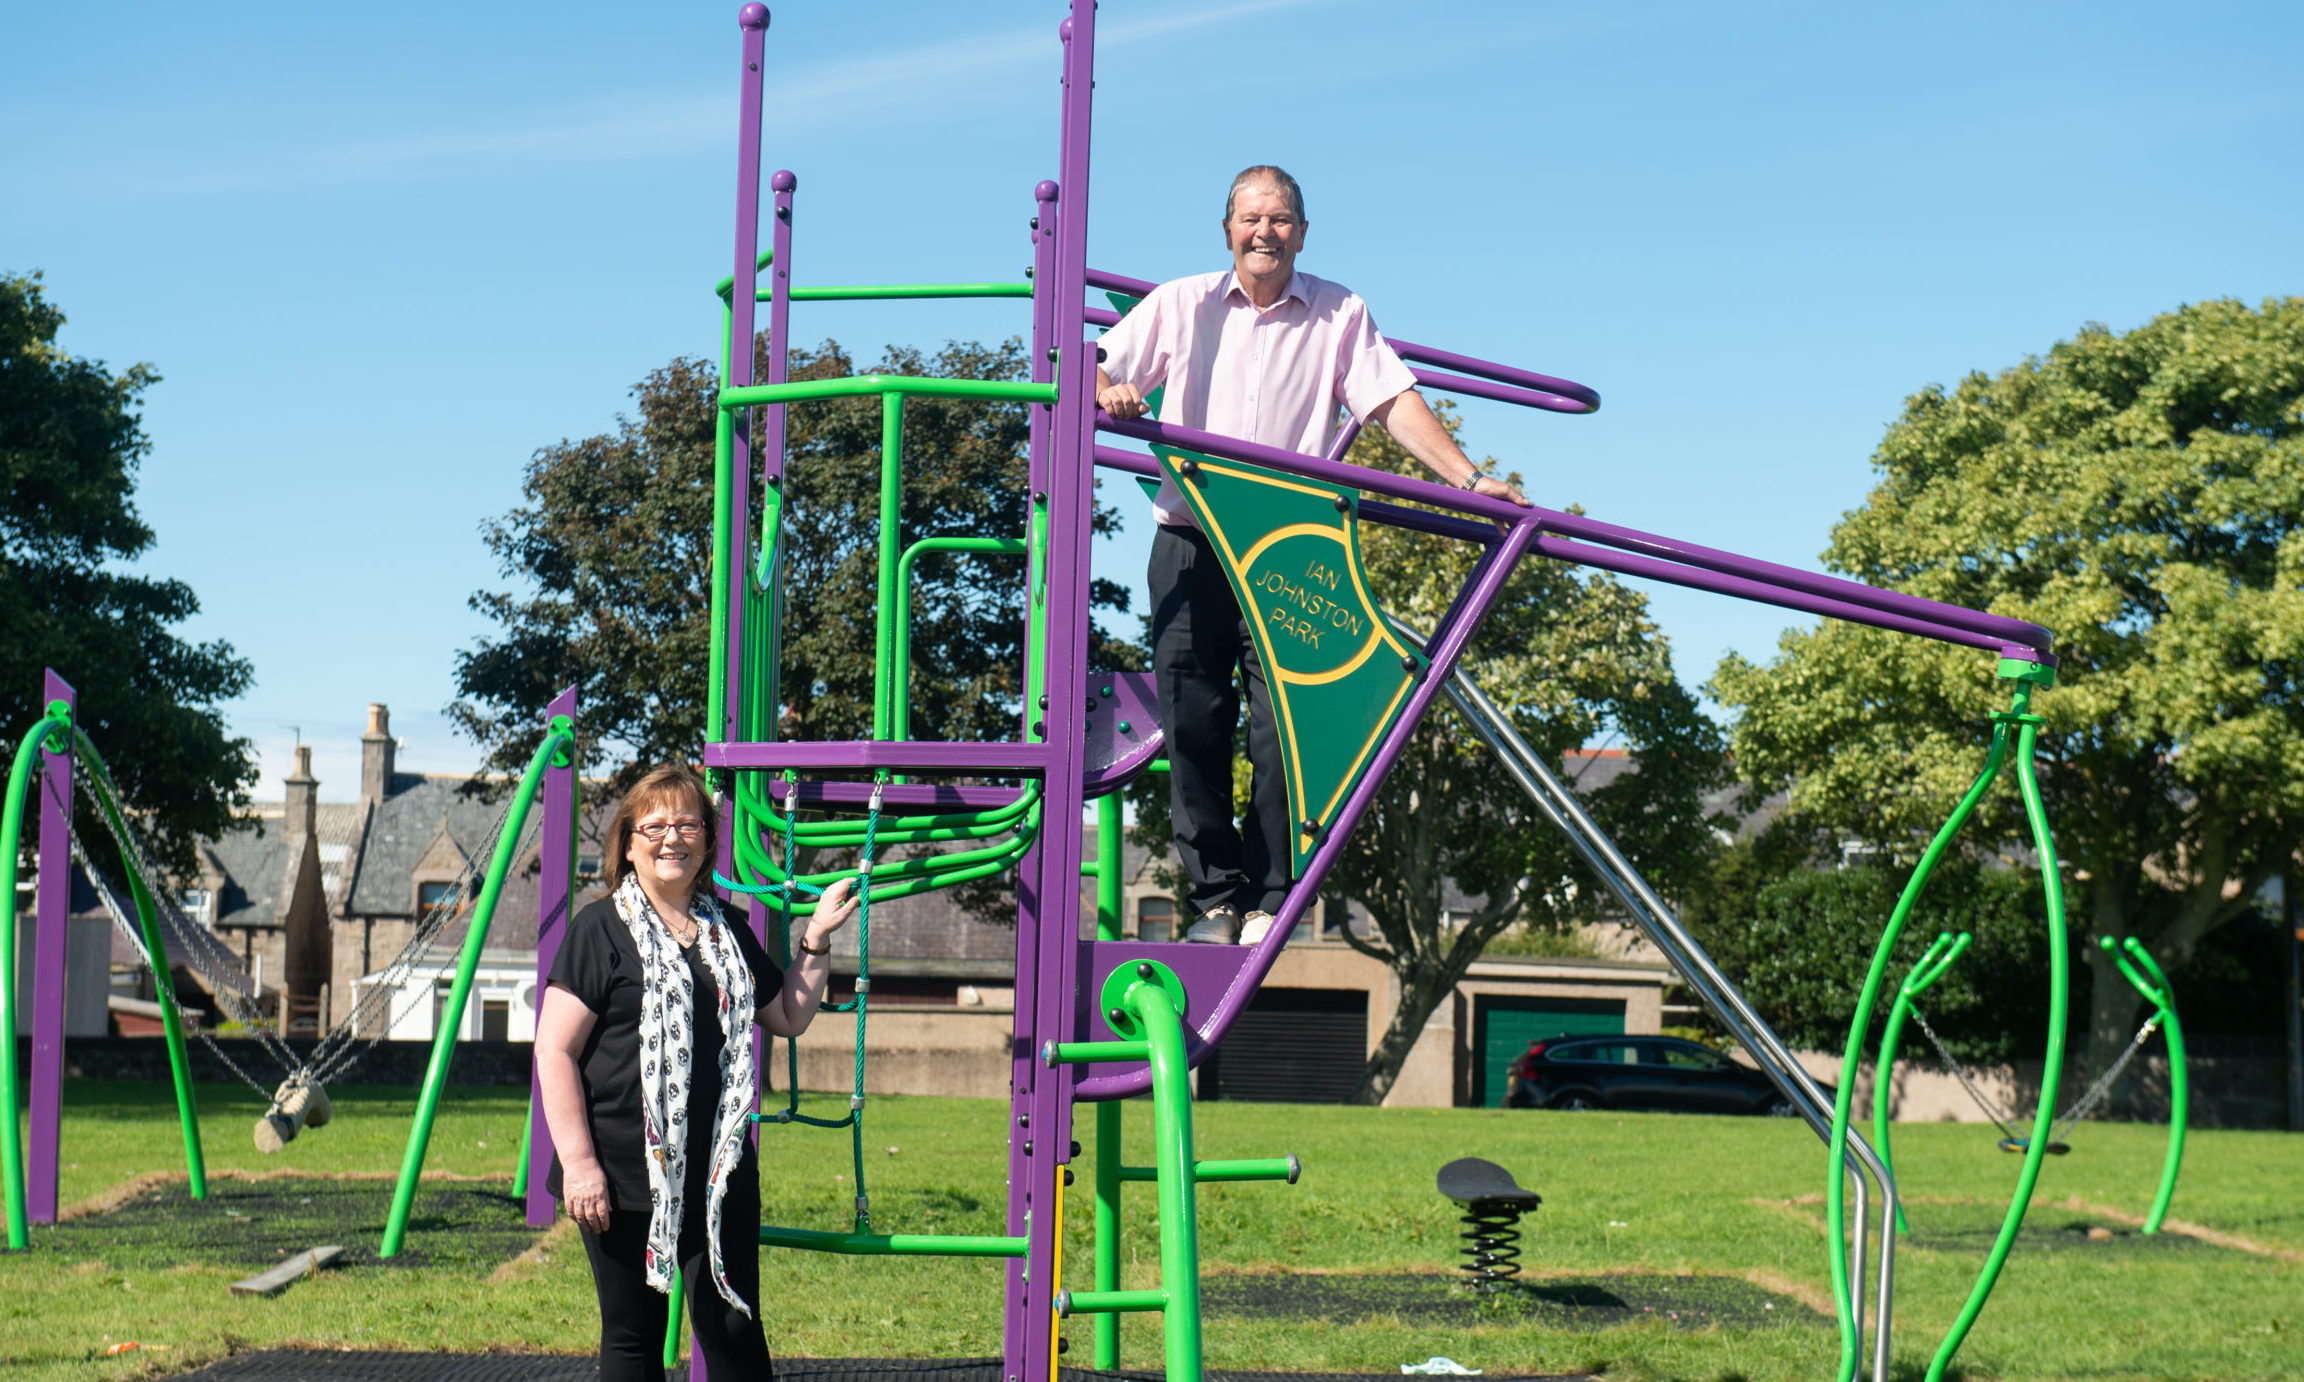 Buckie councillors Gordon Cowie and Sonya Warren. Picture by Jason Hedges.